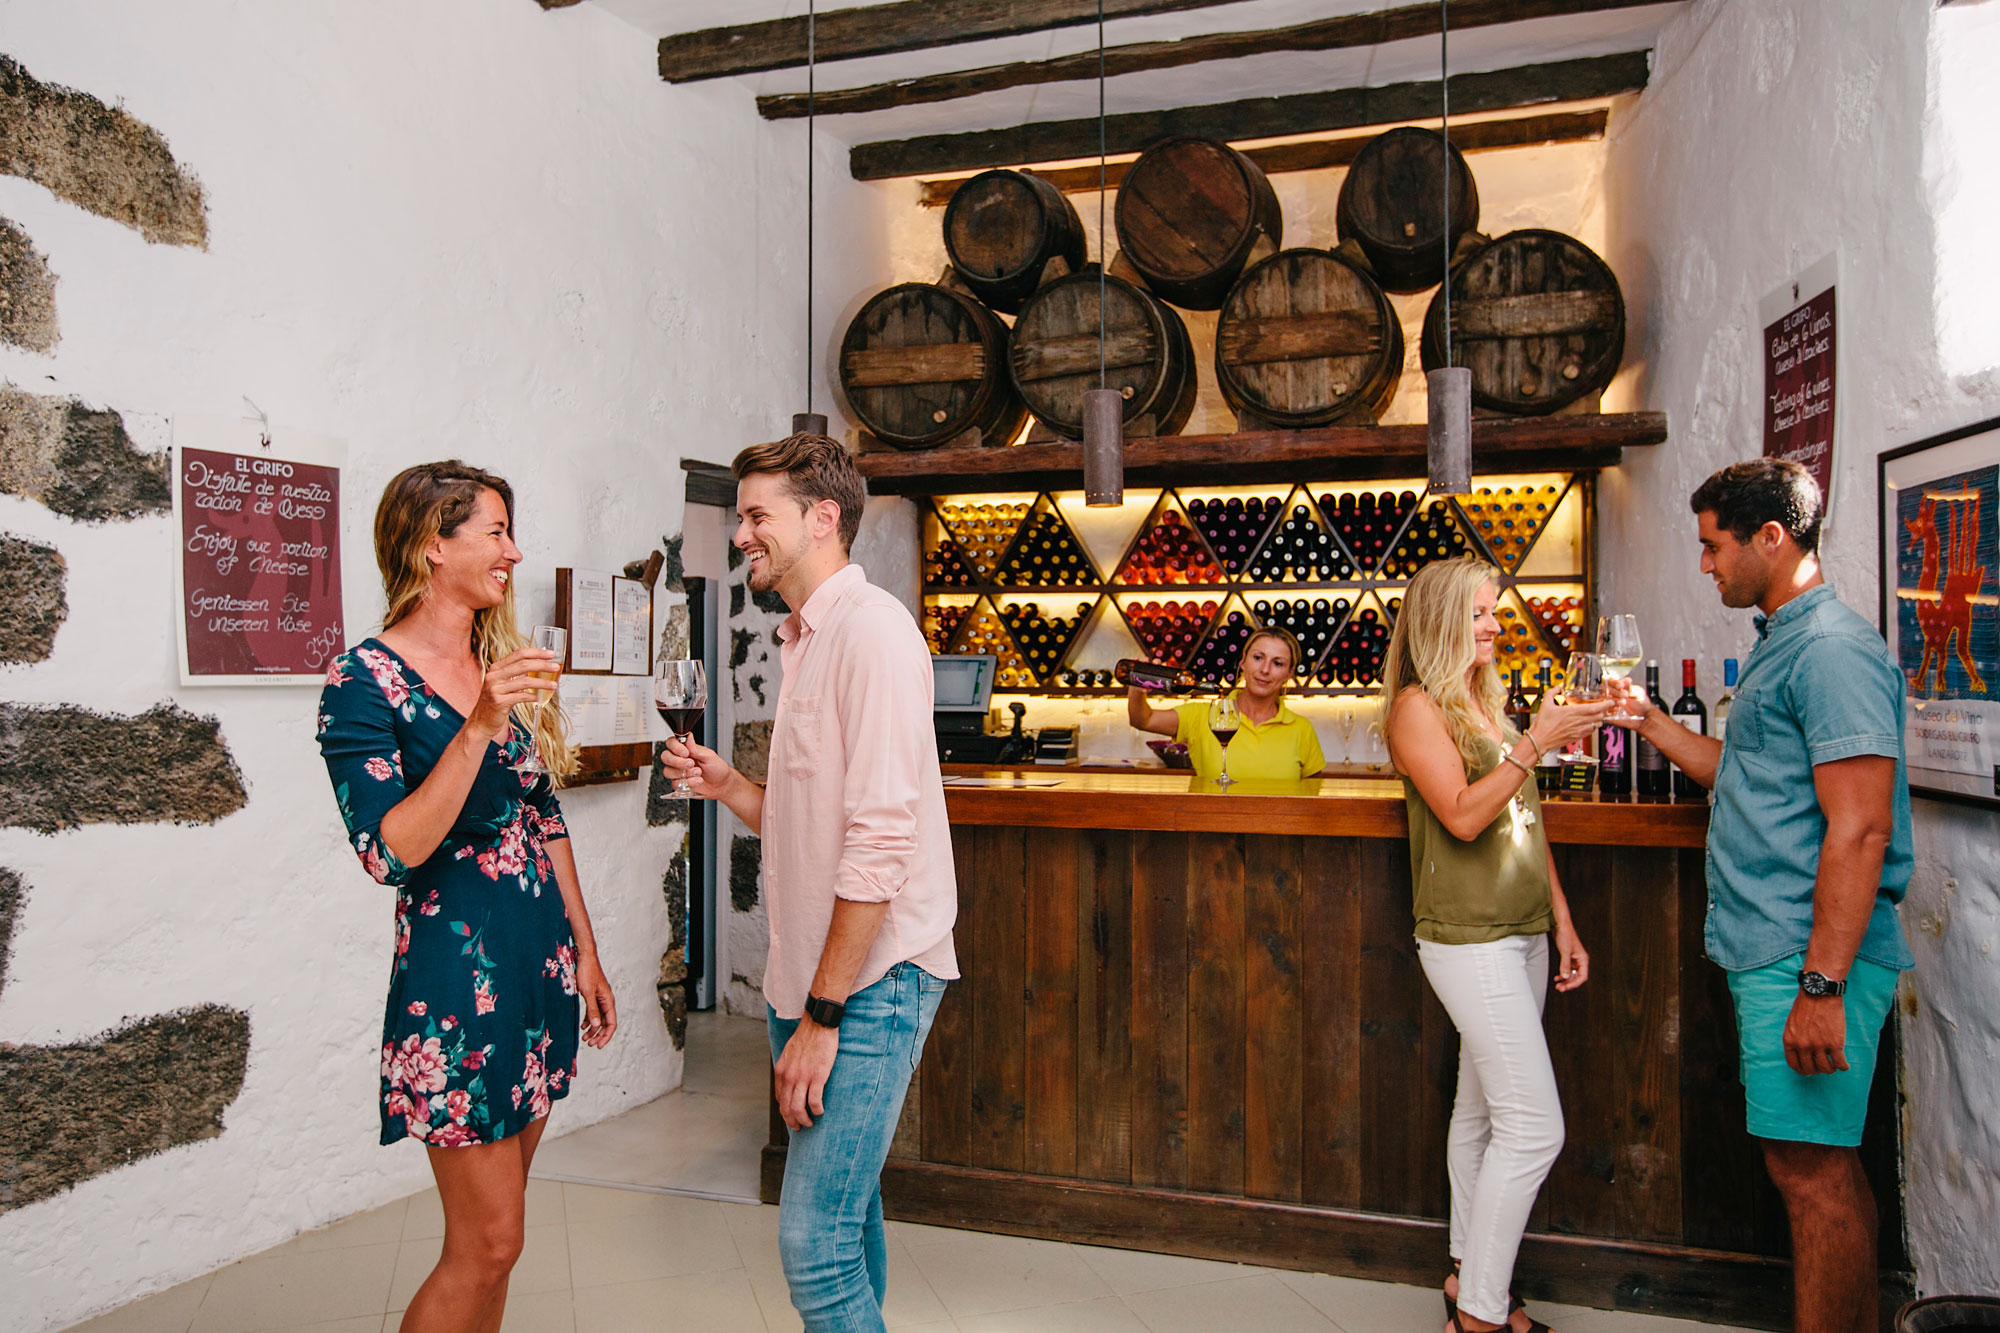 Several young people trying the wine in the wine room at Vino Cata.